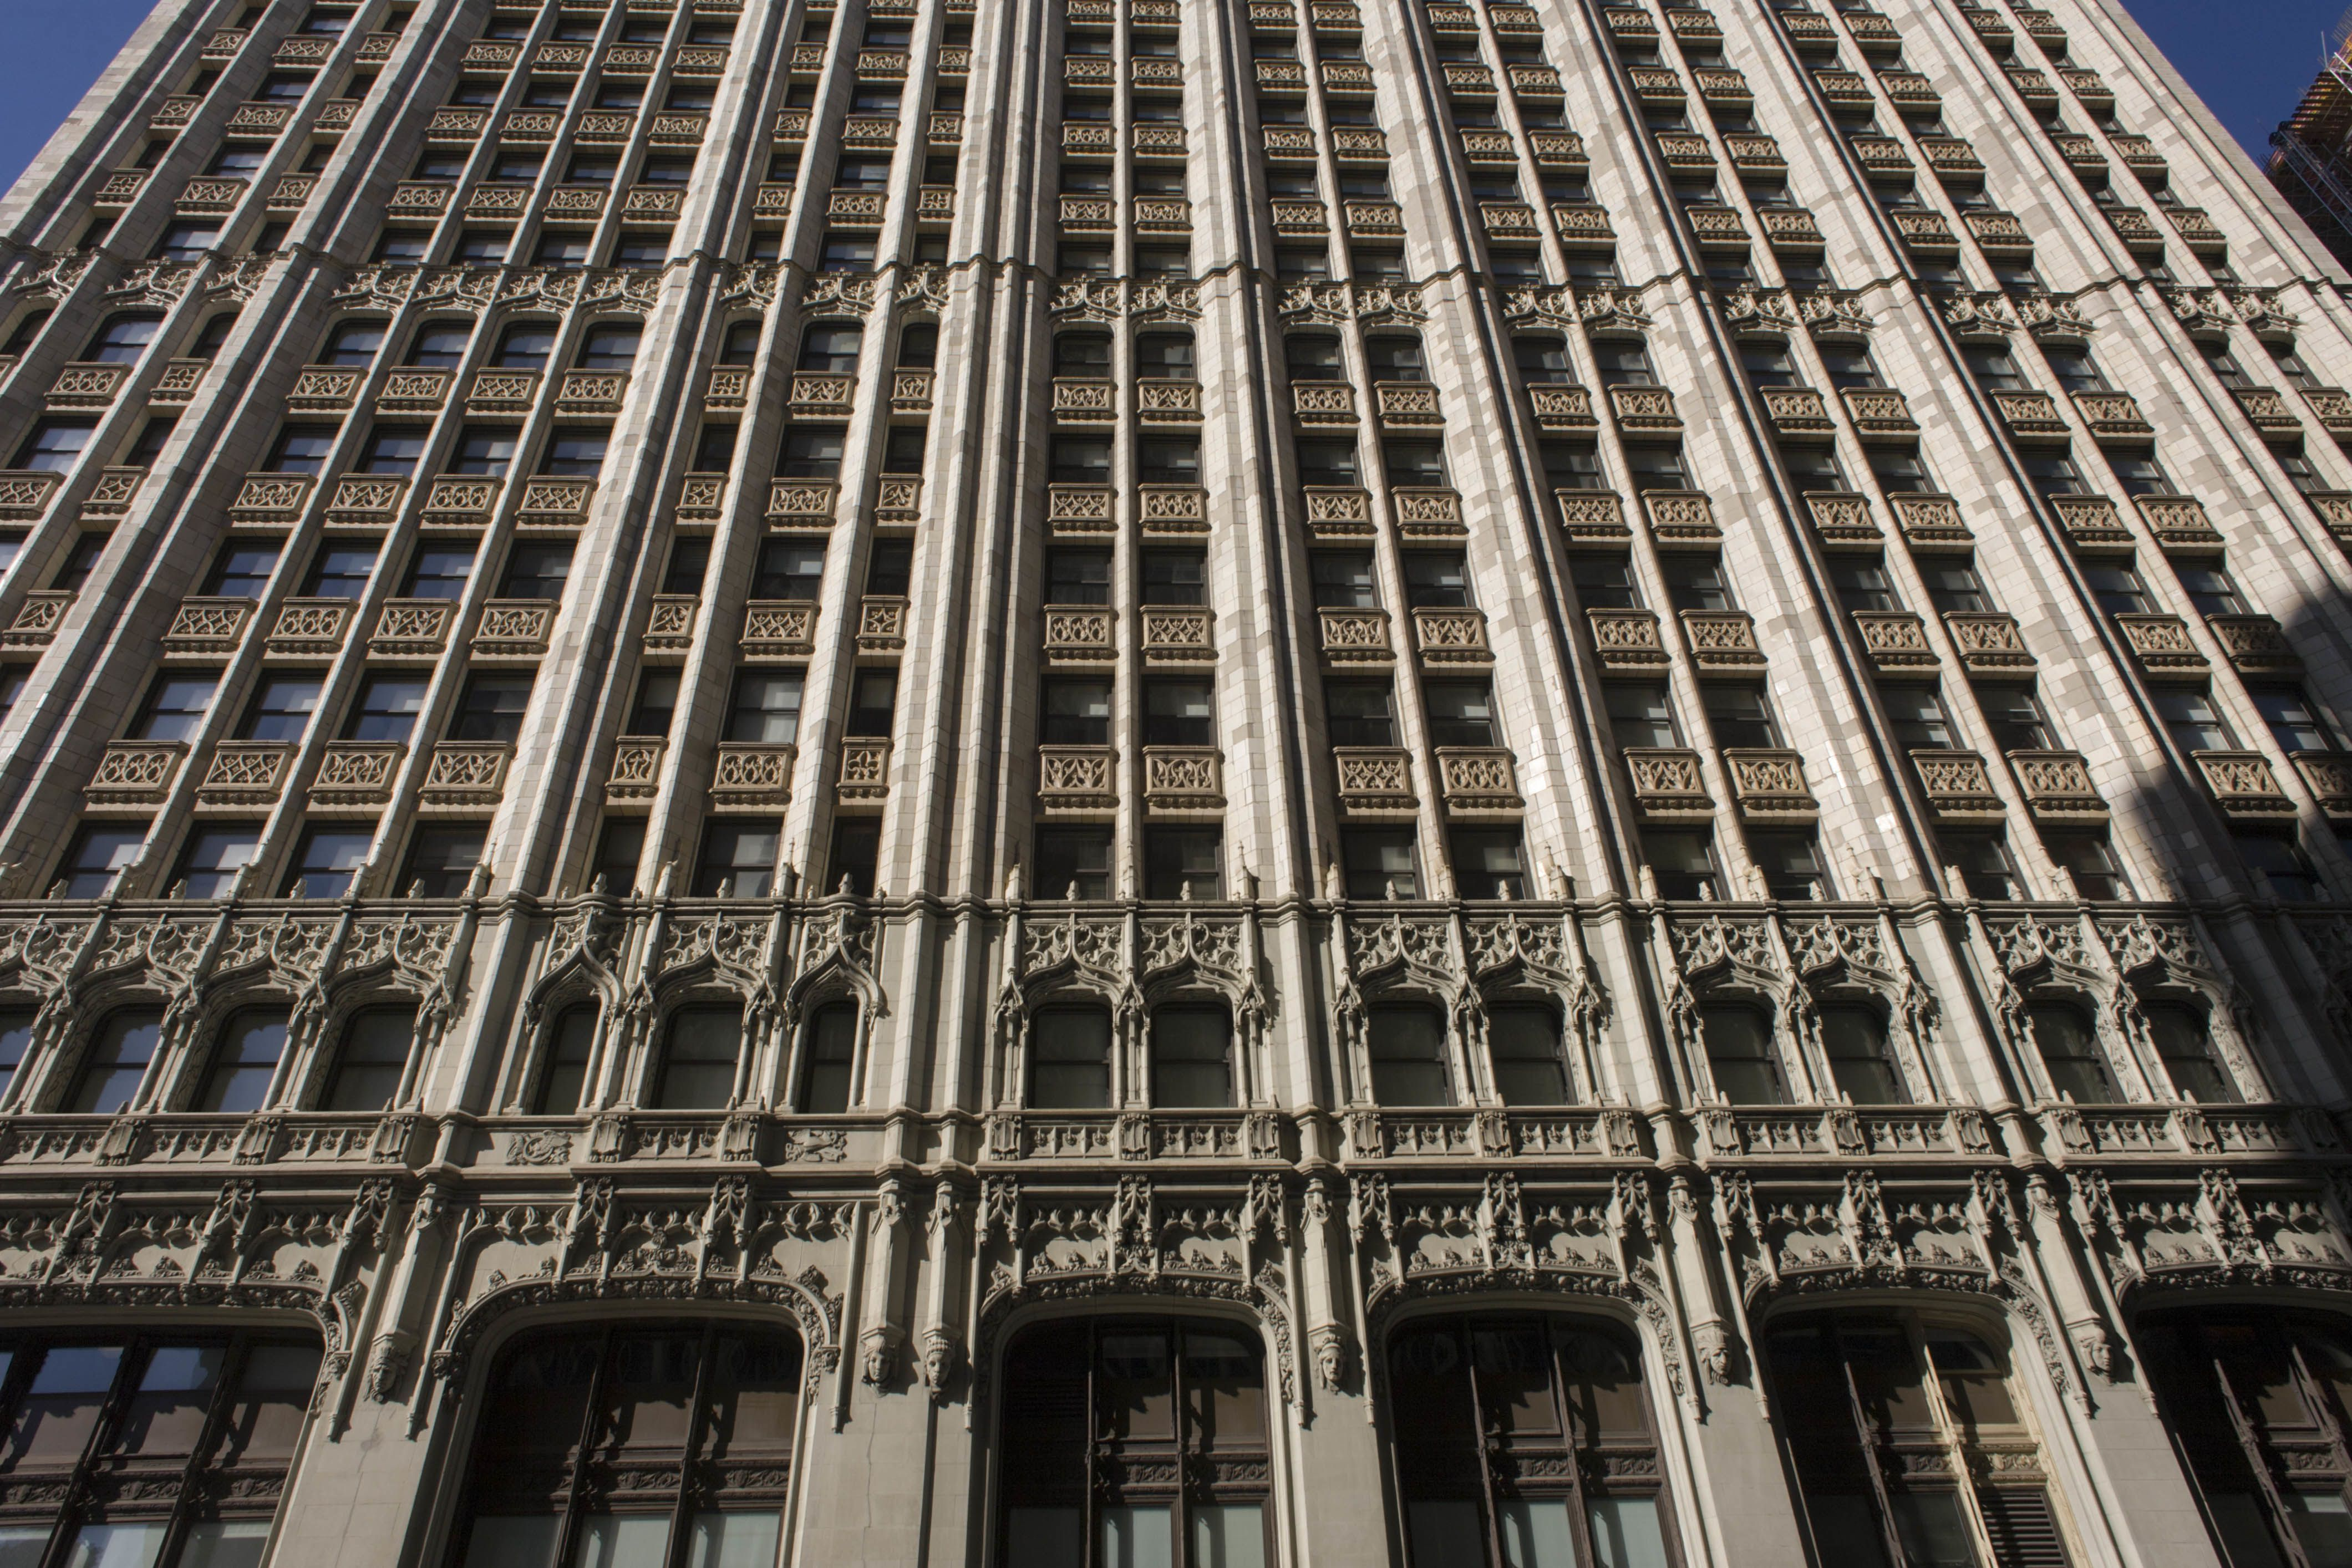 Low angle view of Gothic Revival Woolworth building in Lower Manhattan